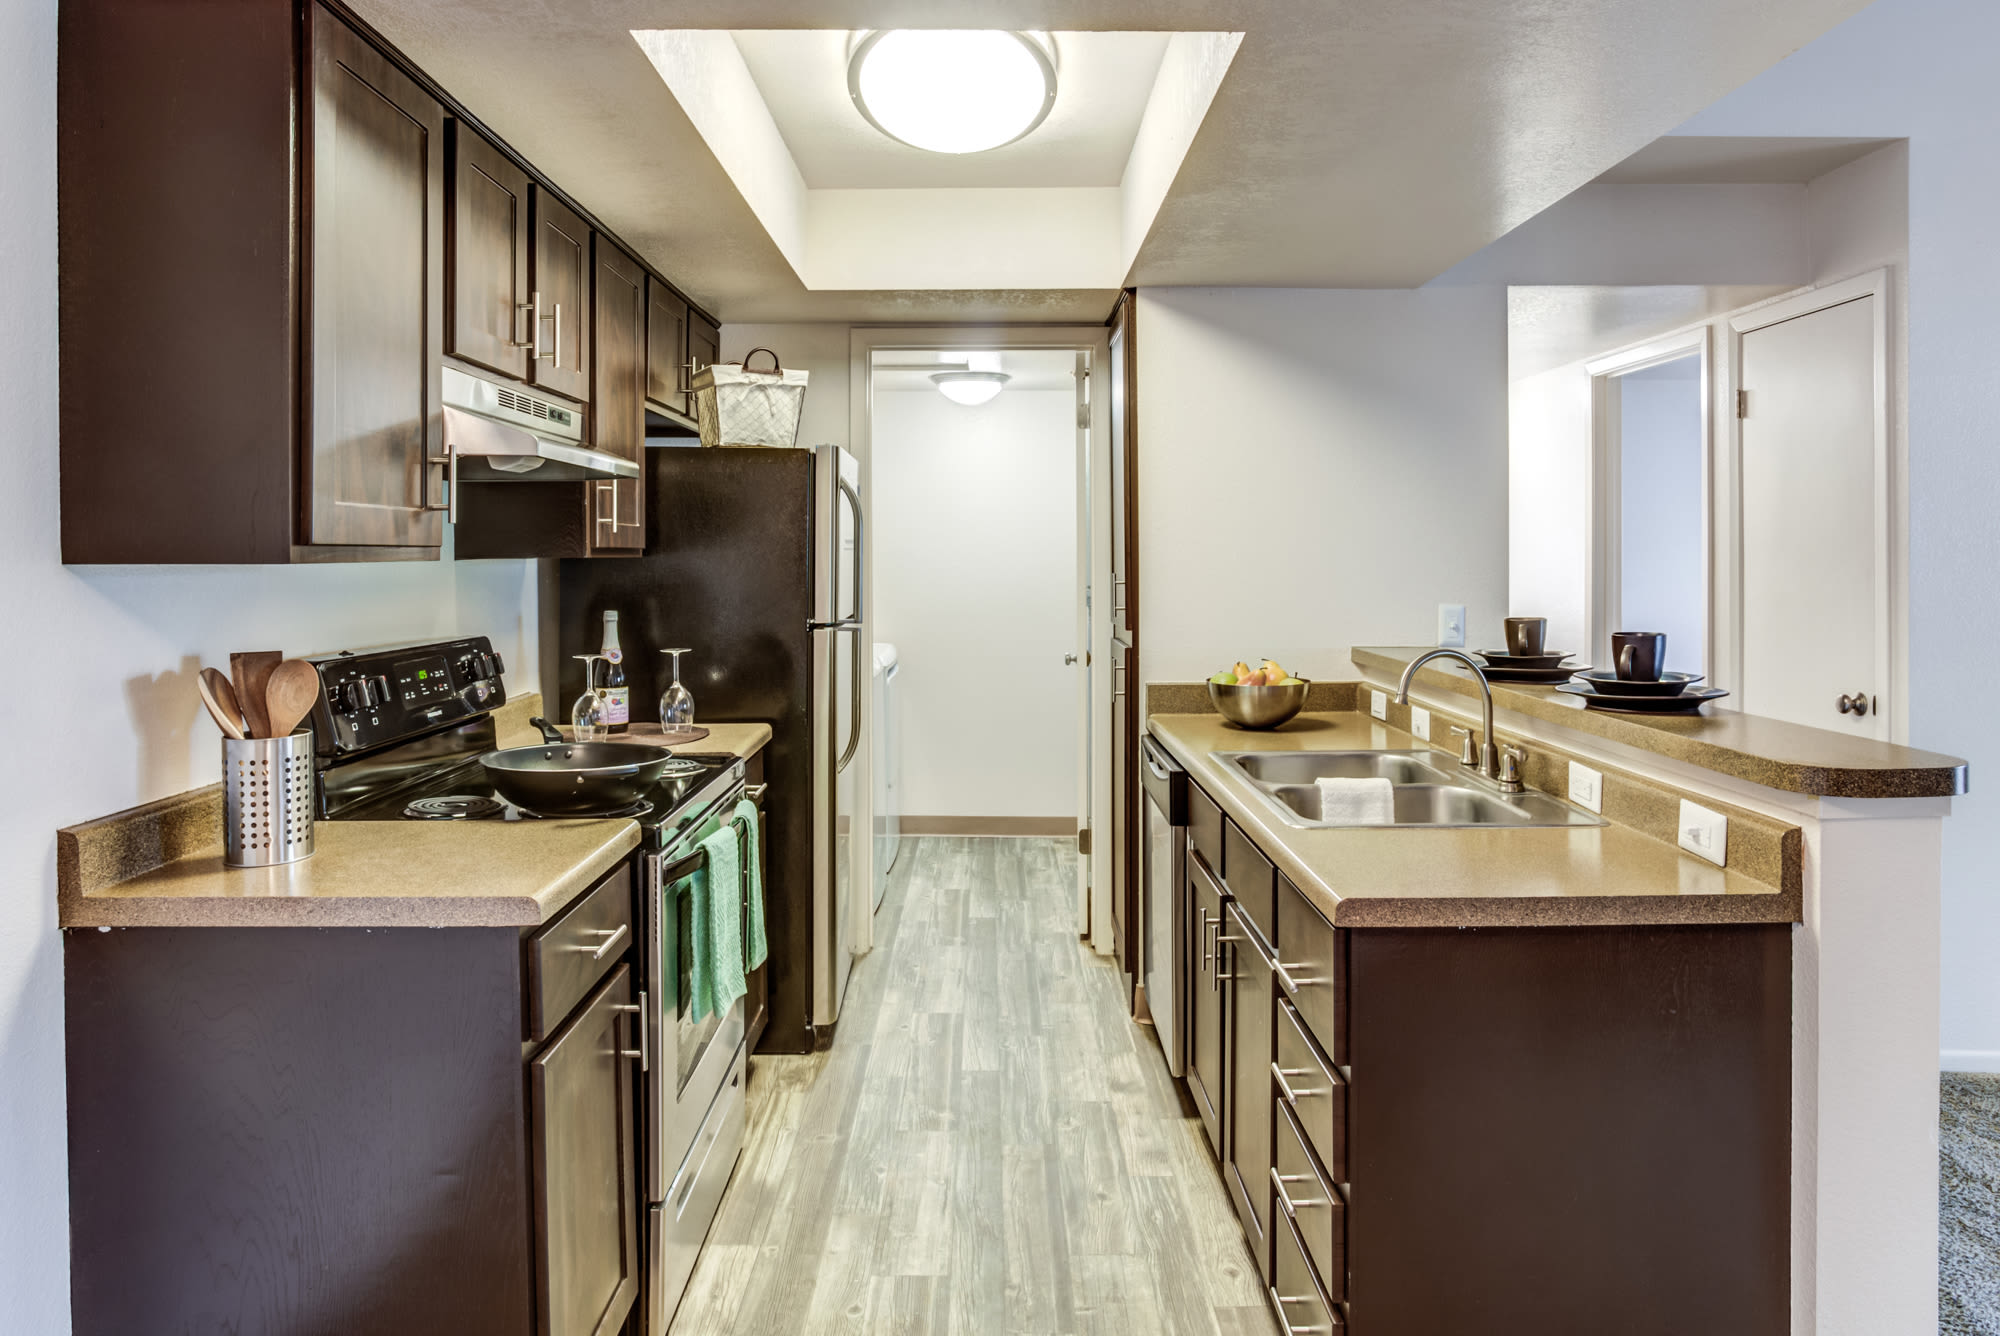 Kitchen at Springs of Country Woods Apartments in Midvale